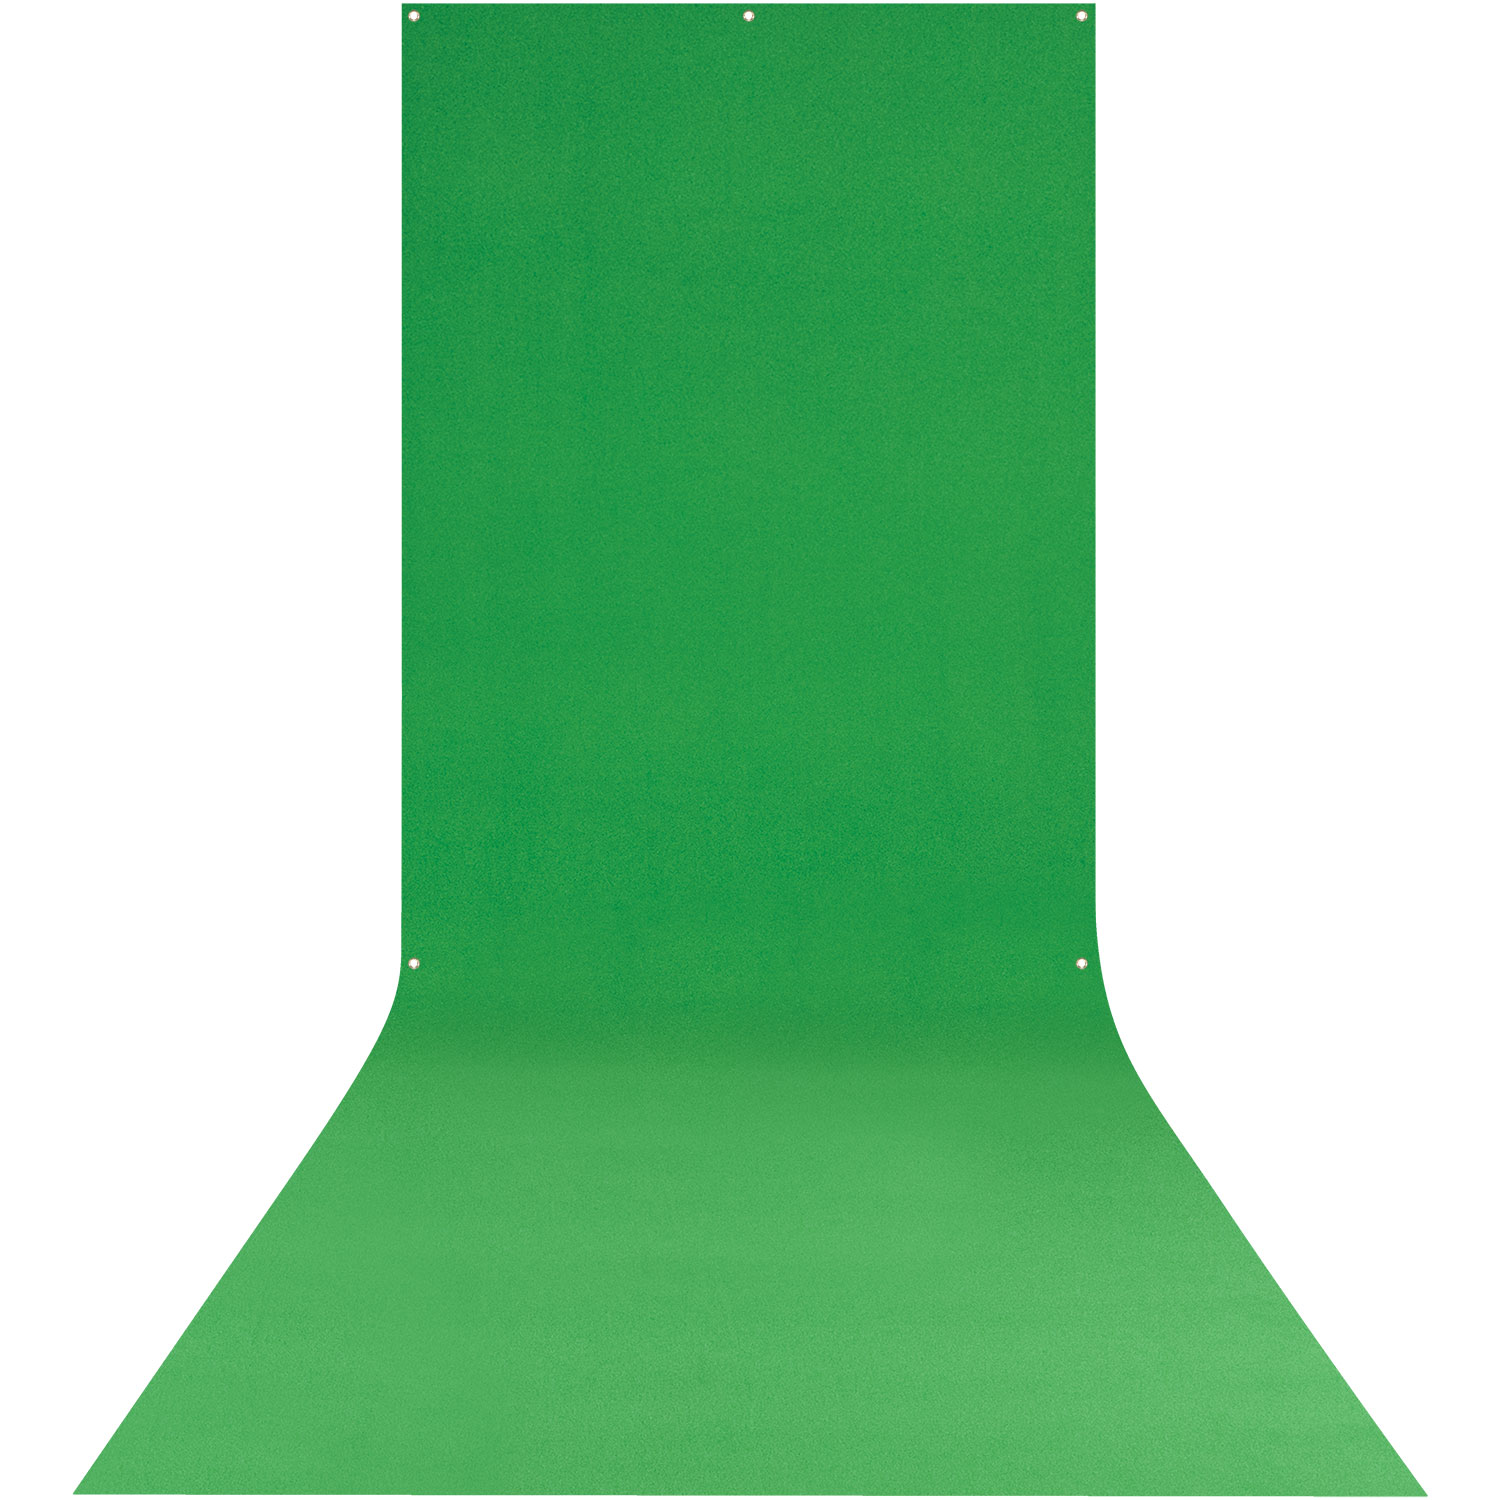 X-Drop Wrinkle-Resistant Backdrop - Chroma-Key Green Screen Sweep (5' x 12')